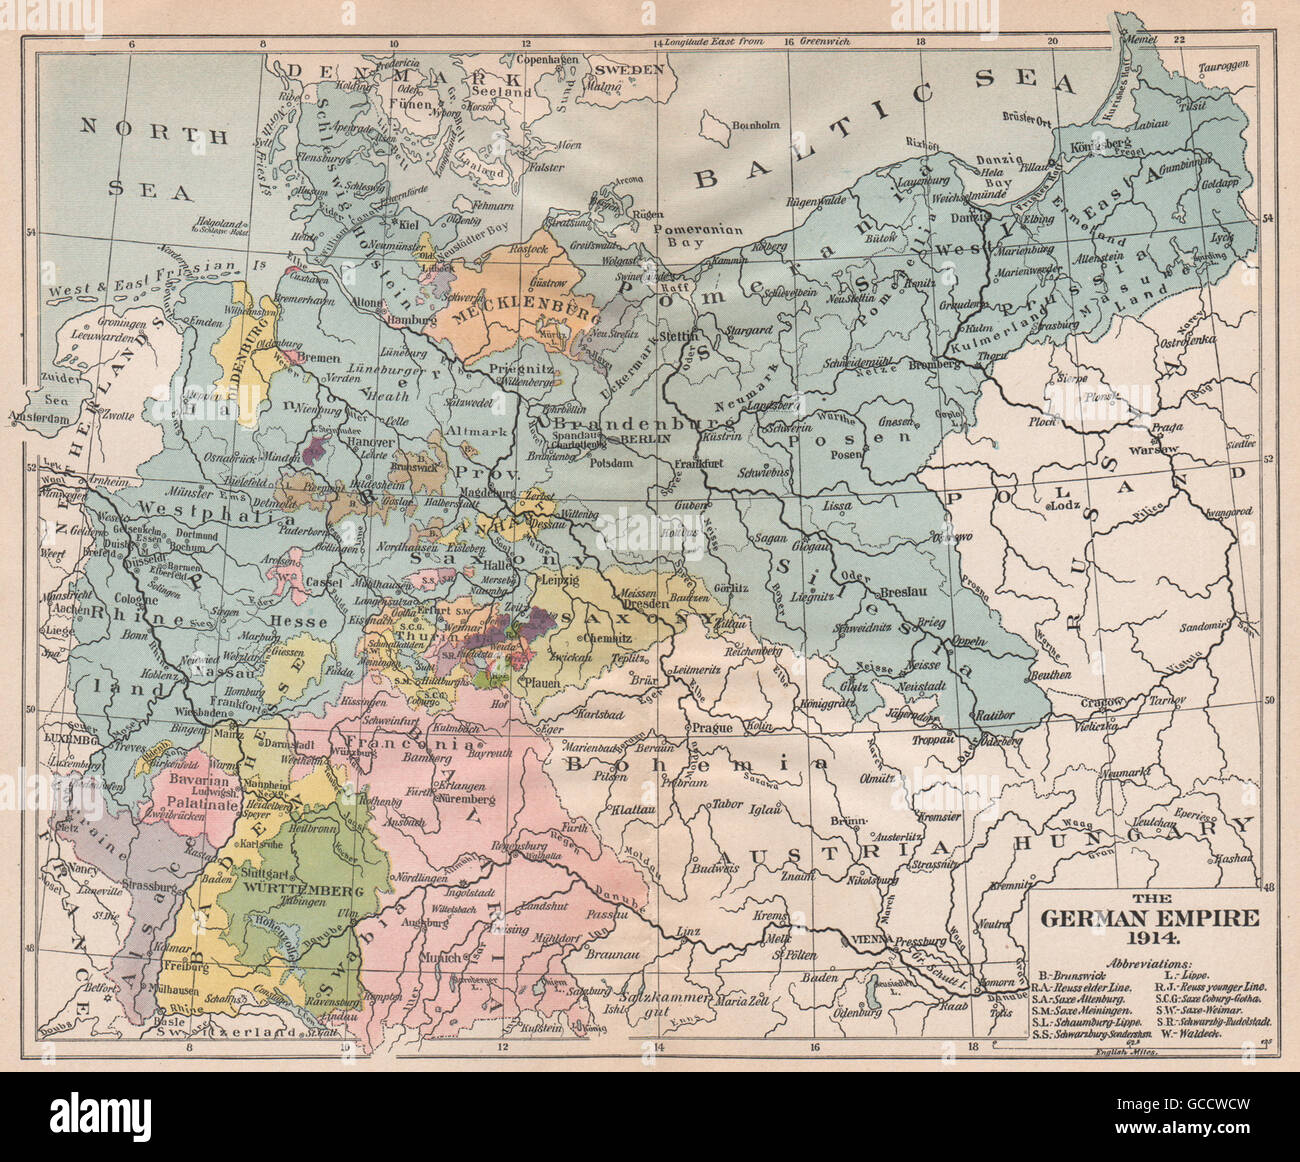 Germany German Empire Map Stock Photos & Germany German Empire Map ...